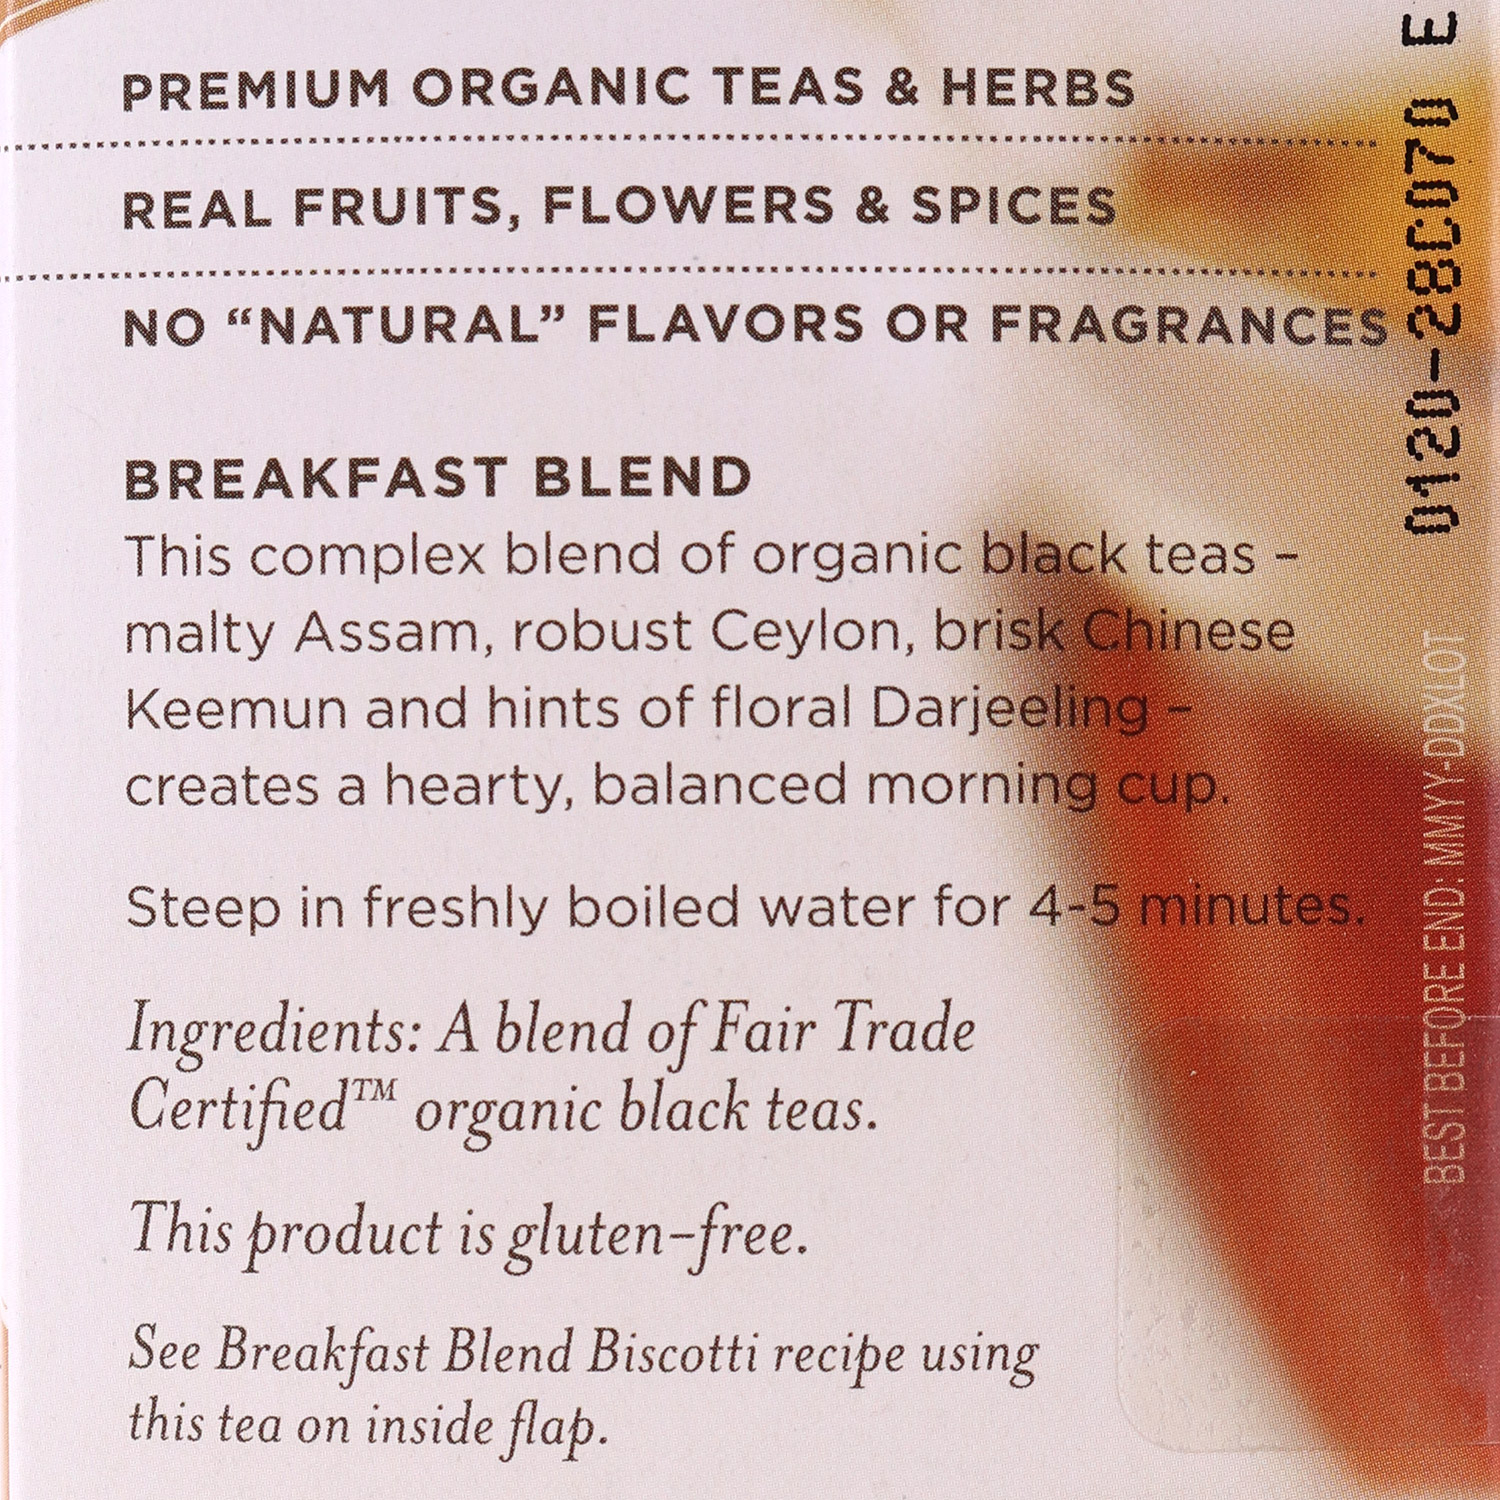 Tea, Breakfast Blend Black Tea-Organic